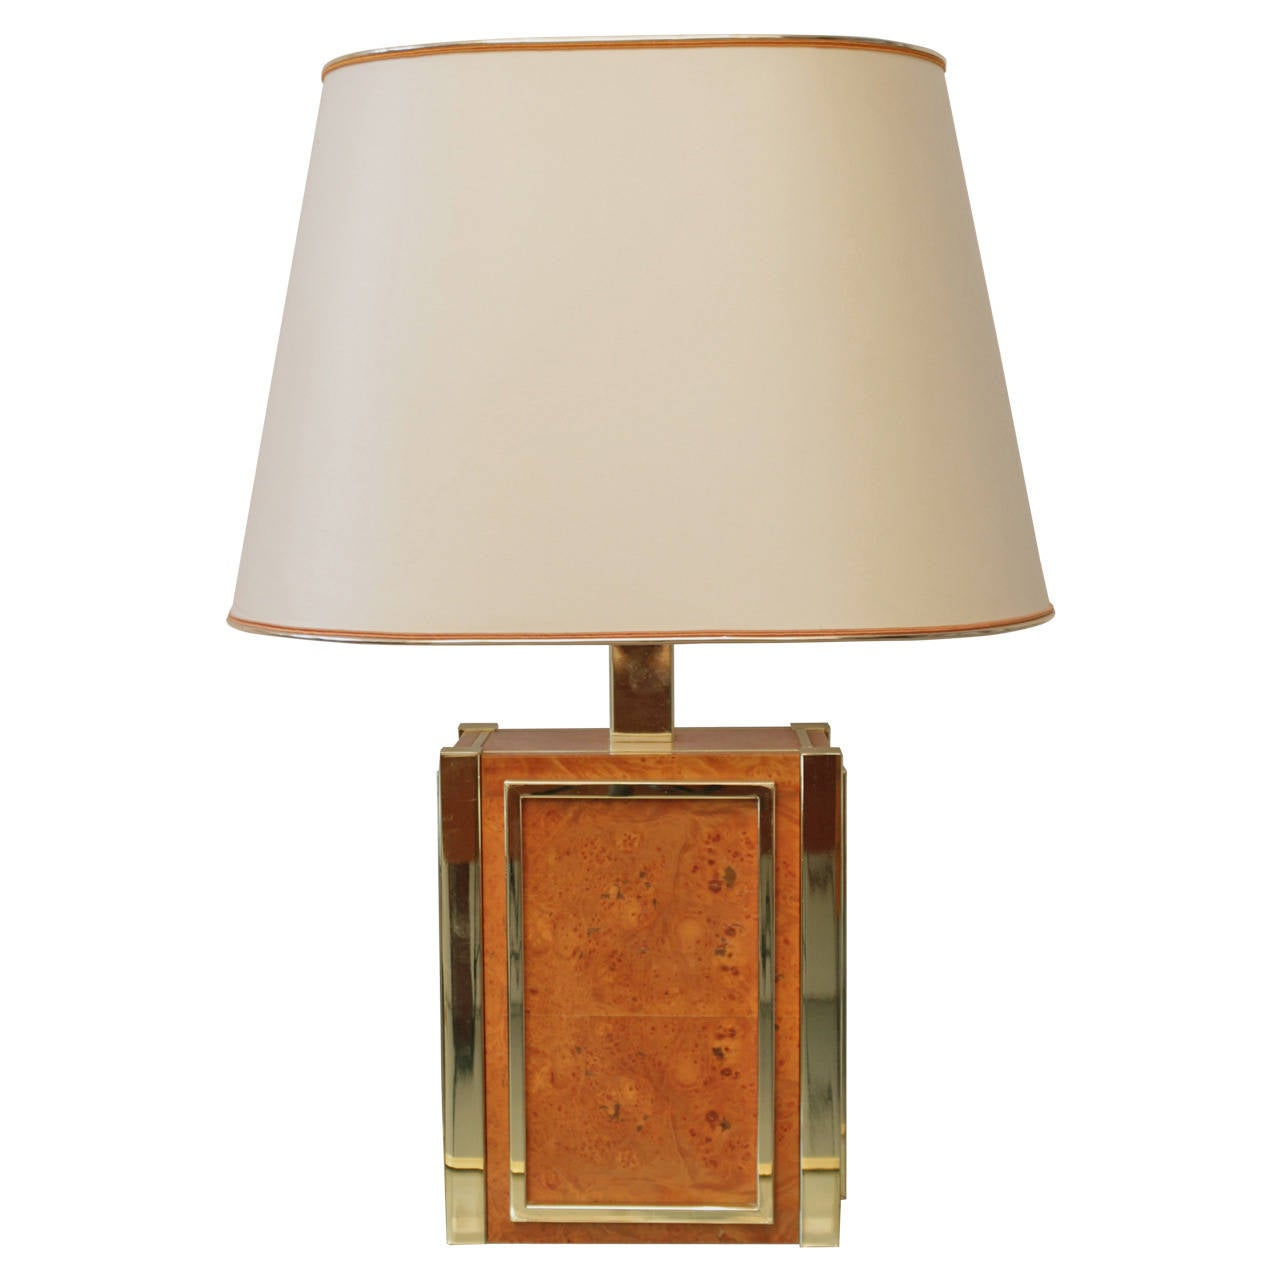 renato zevi brass and burl wood table lamp for sale at 1stdibs. Black Bedroom Furniture Sets. Home Design Ideas